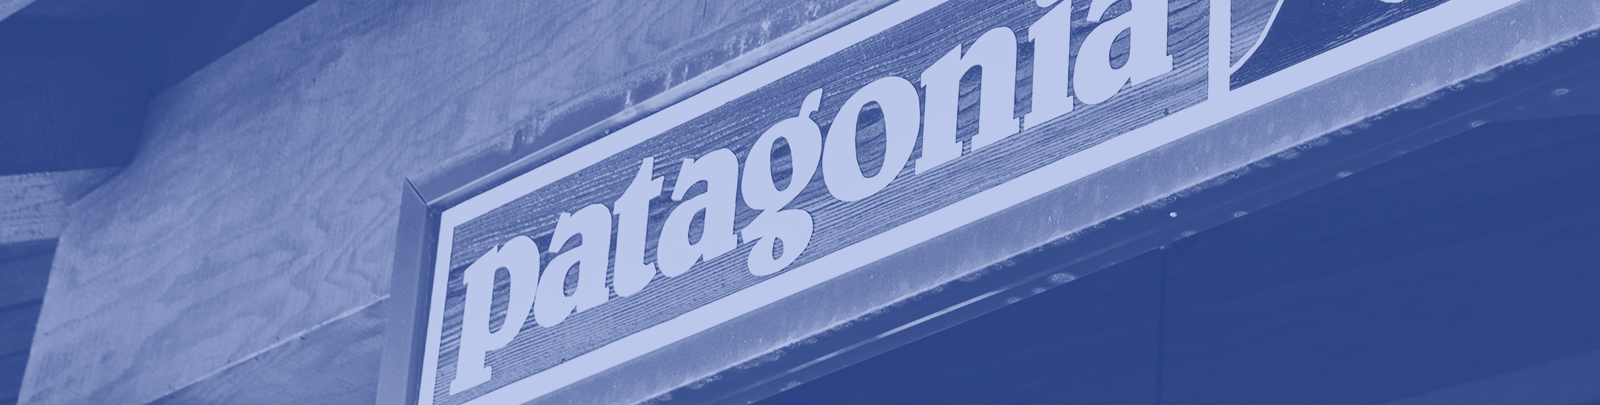 Patagonia store front sign header image